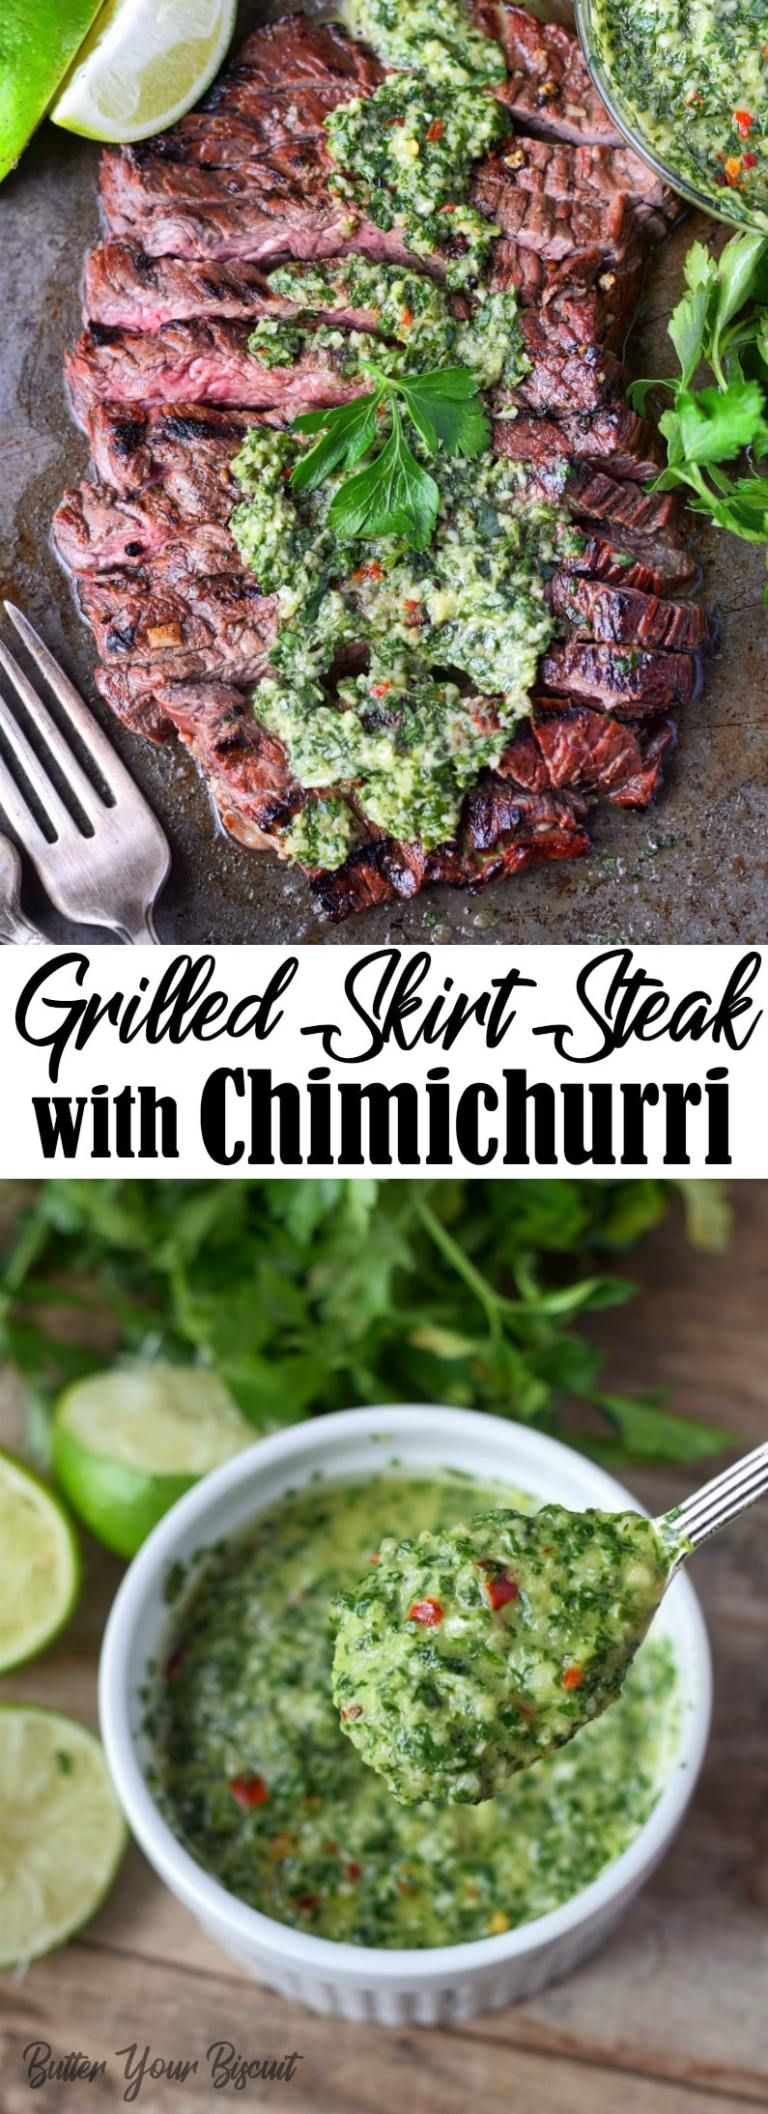 Skirt Steak with Chimichurri Recipe-Butter Your Biscuit